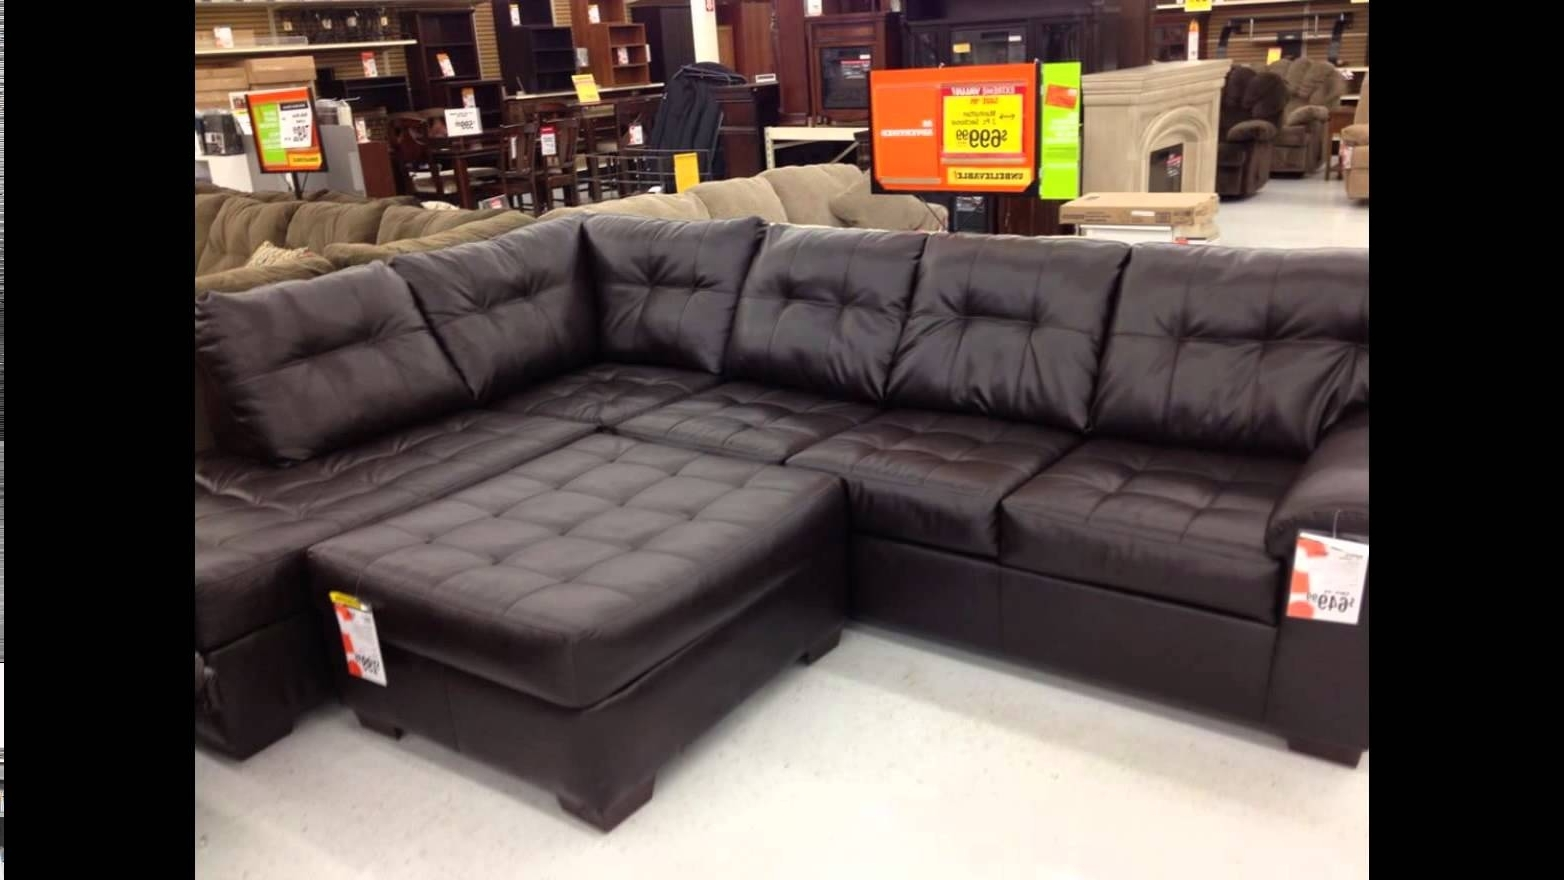 Big Lots Furniture Big Lots Furniture Sale – Youtube Within Current Big Lots Sofas (View 10 of 15)